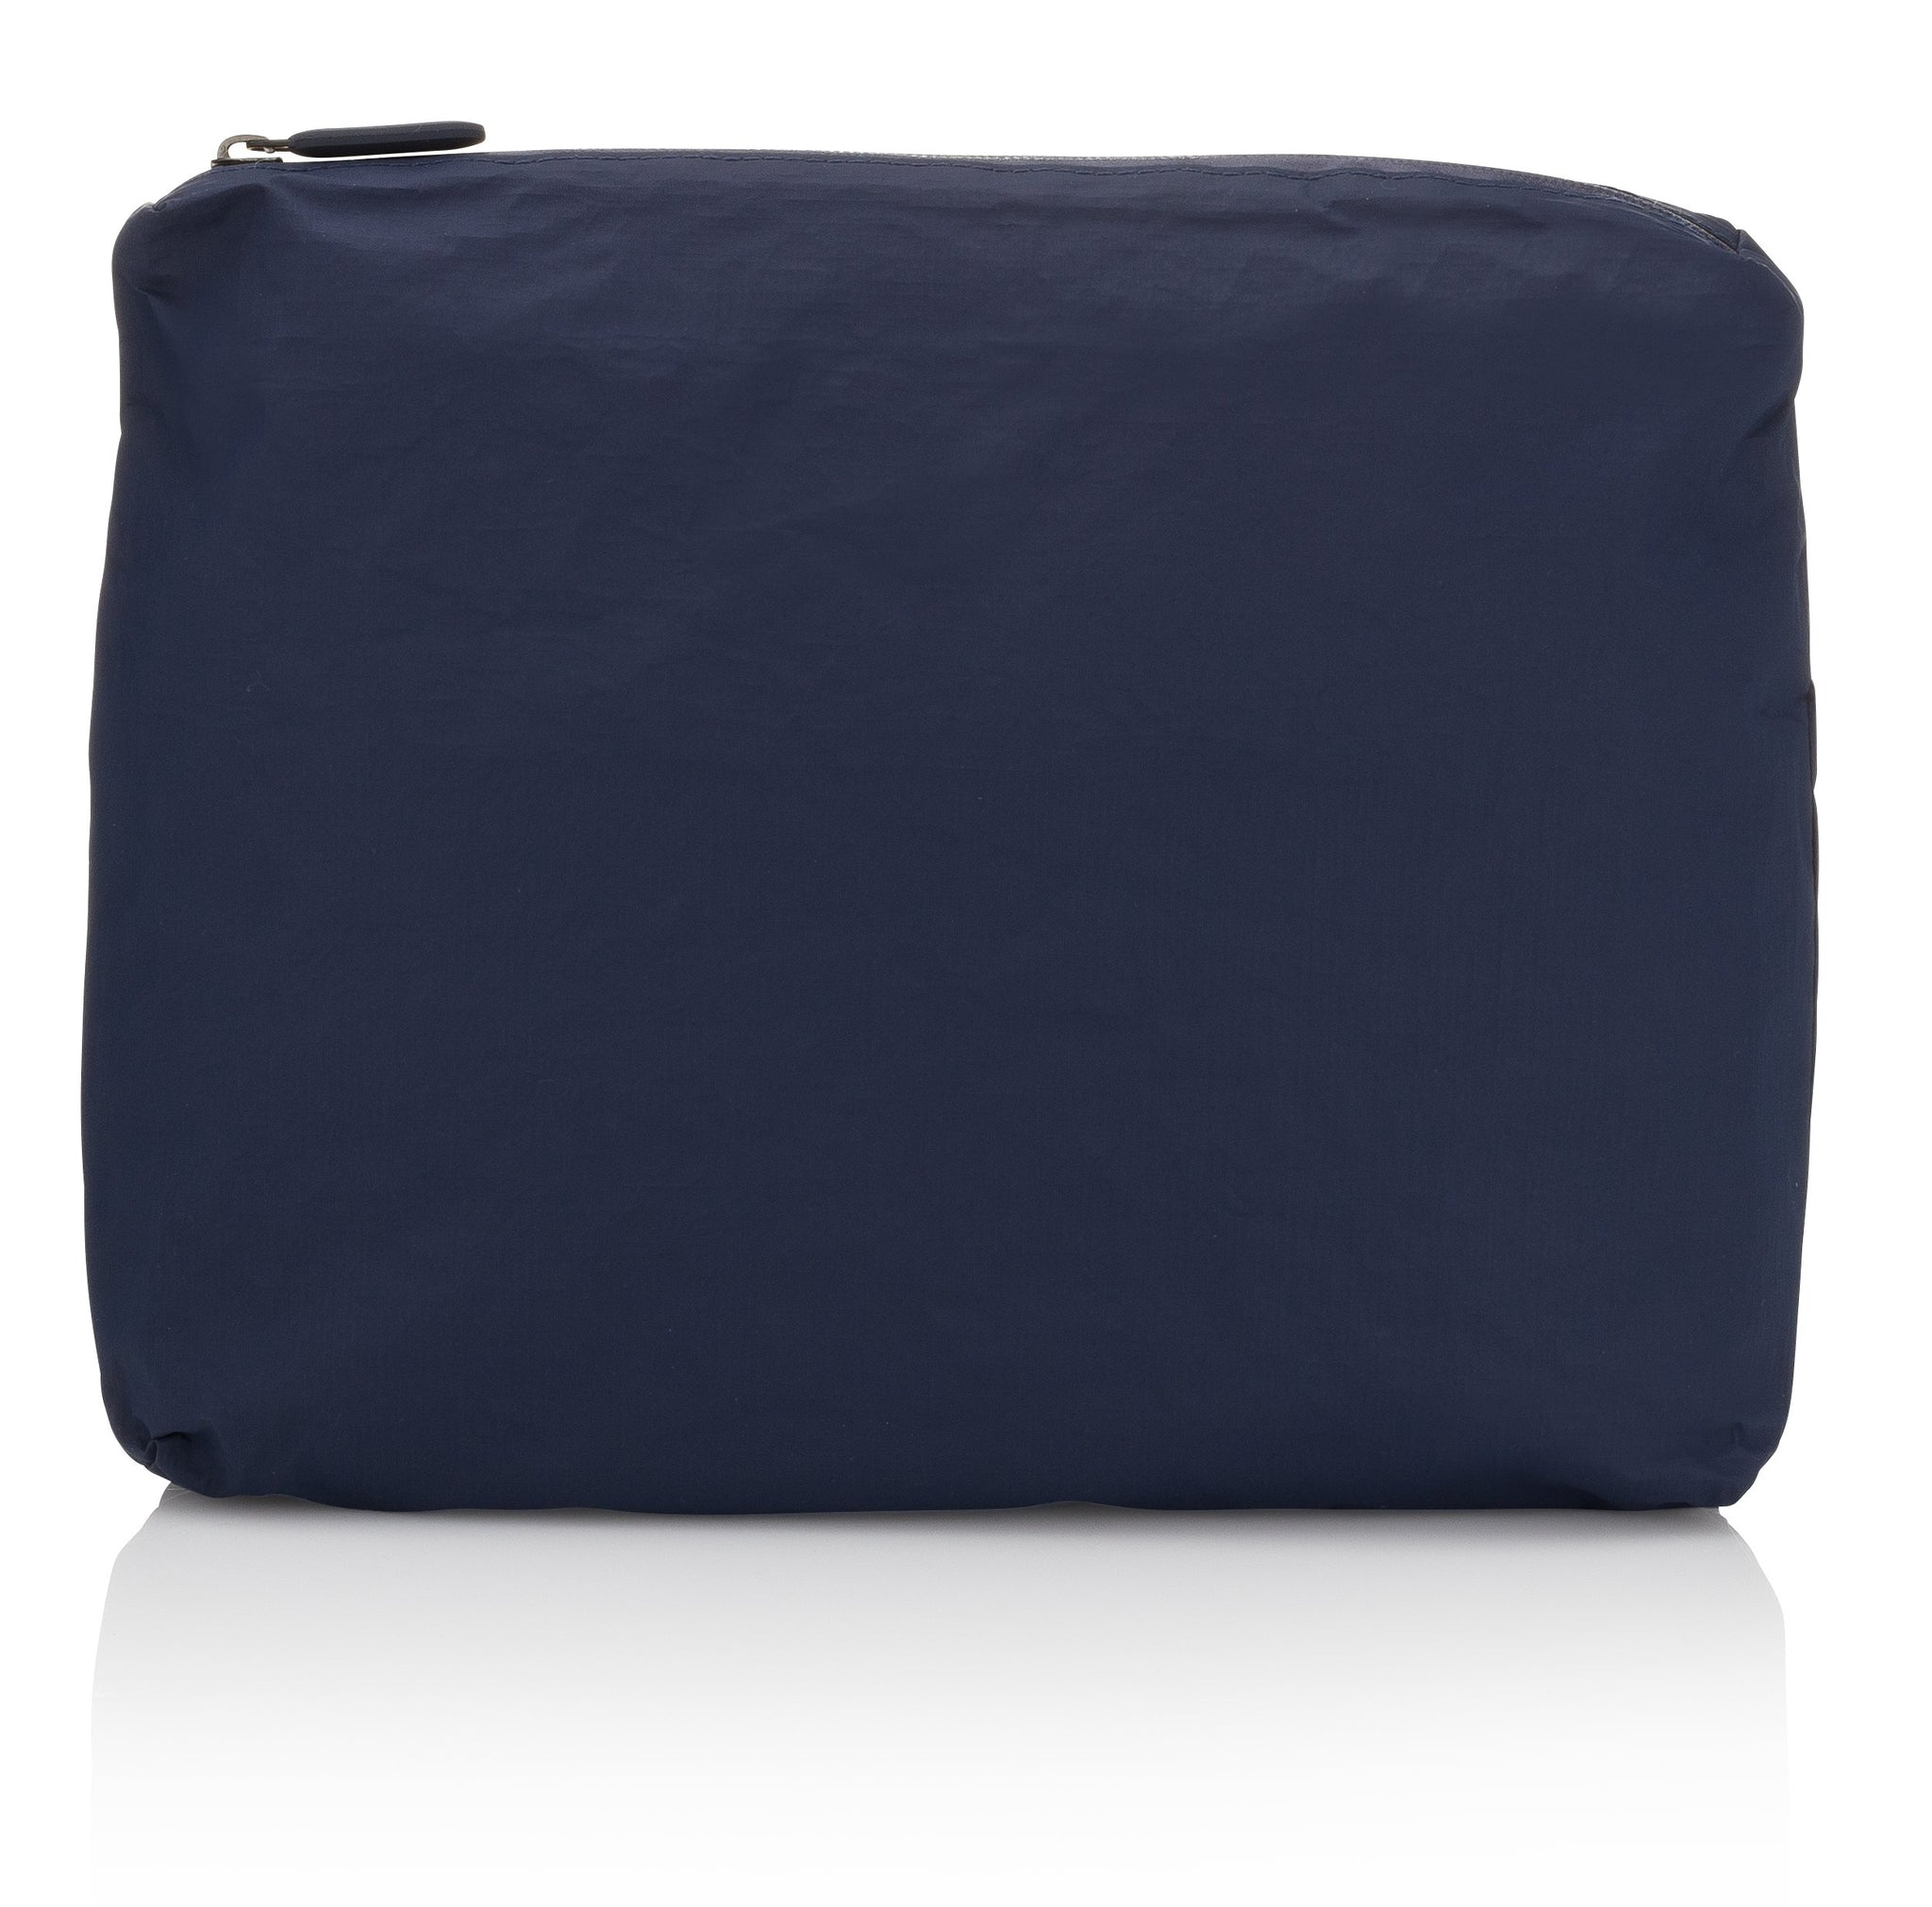 Medium Pack - Navy HLT Collection